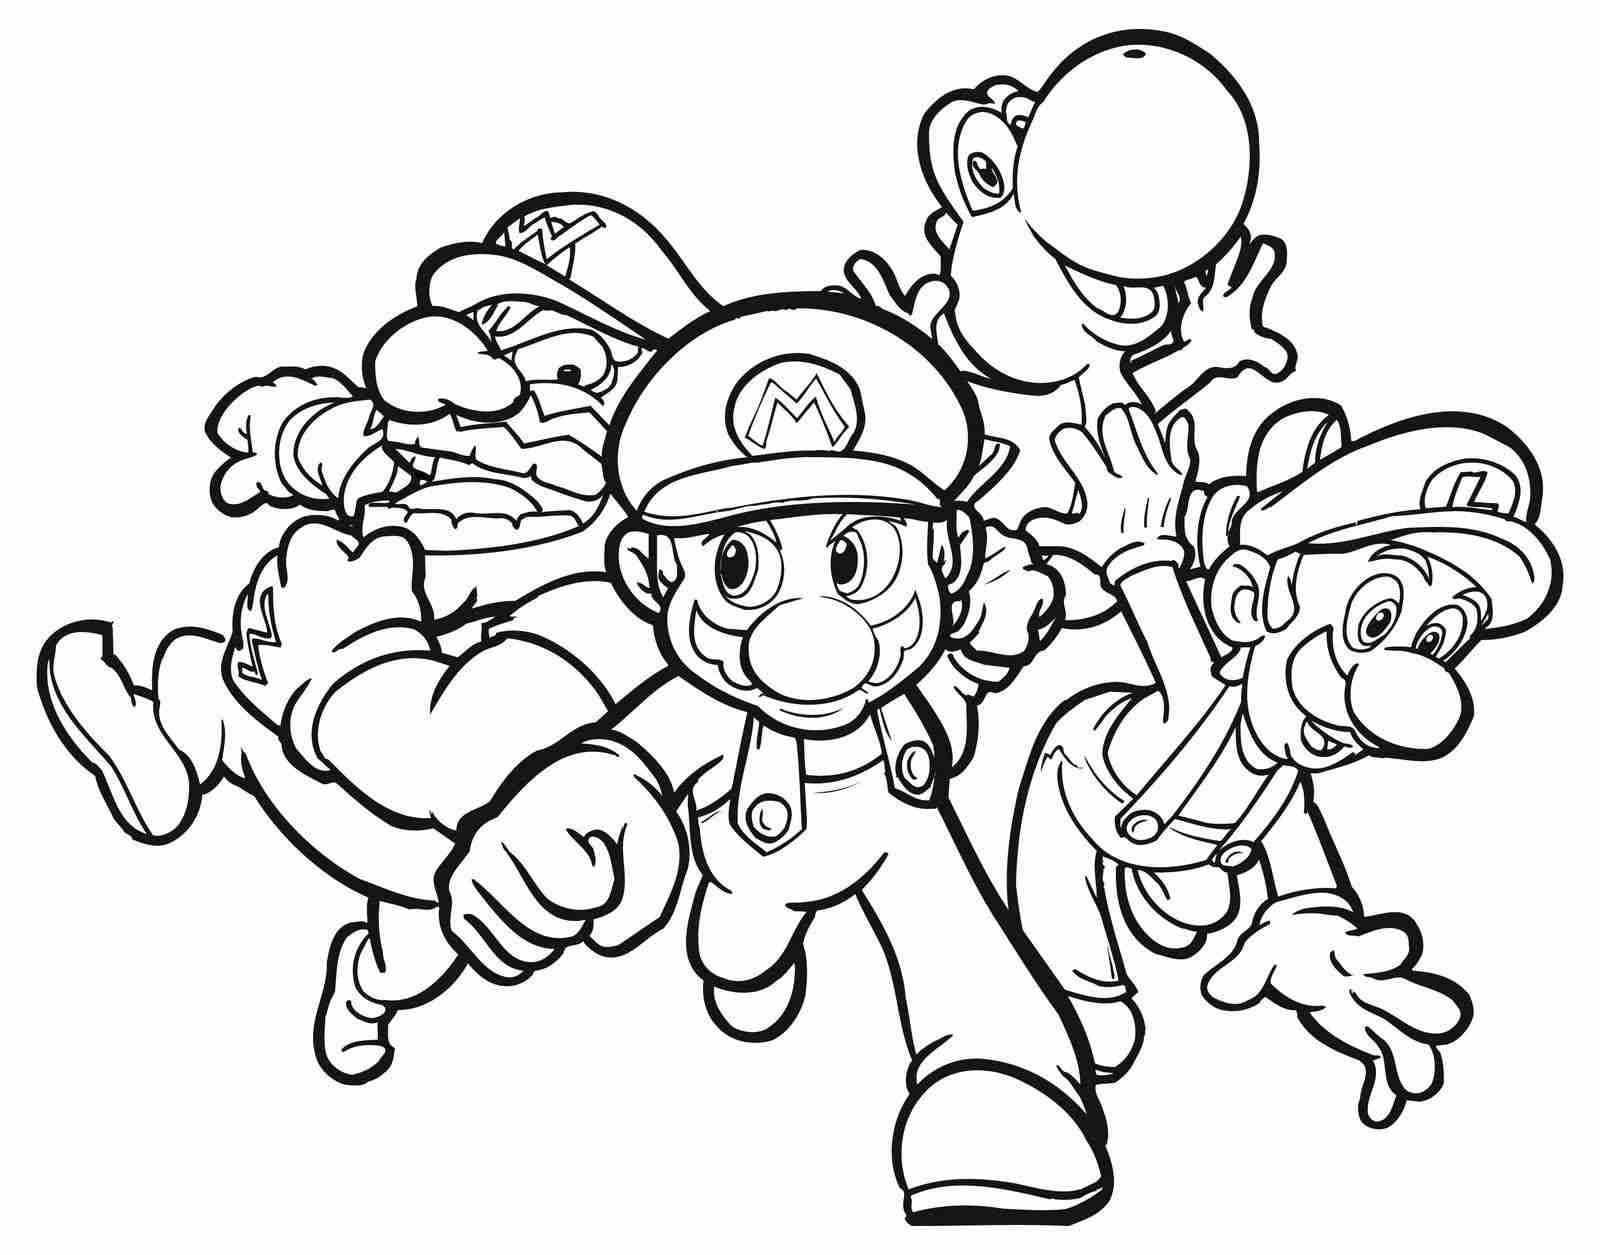 1600x1255 Video Game Coloring Pages Mario Bros Vitlt Com And Arresting